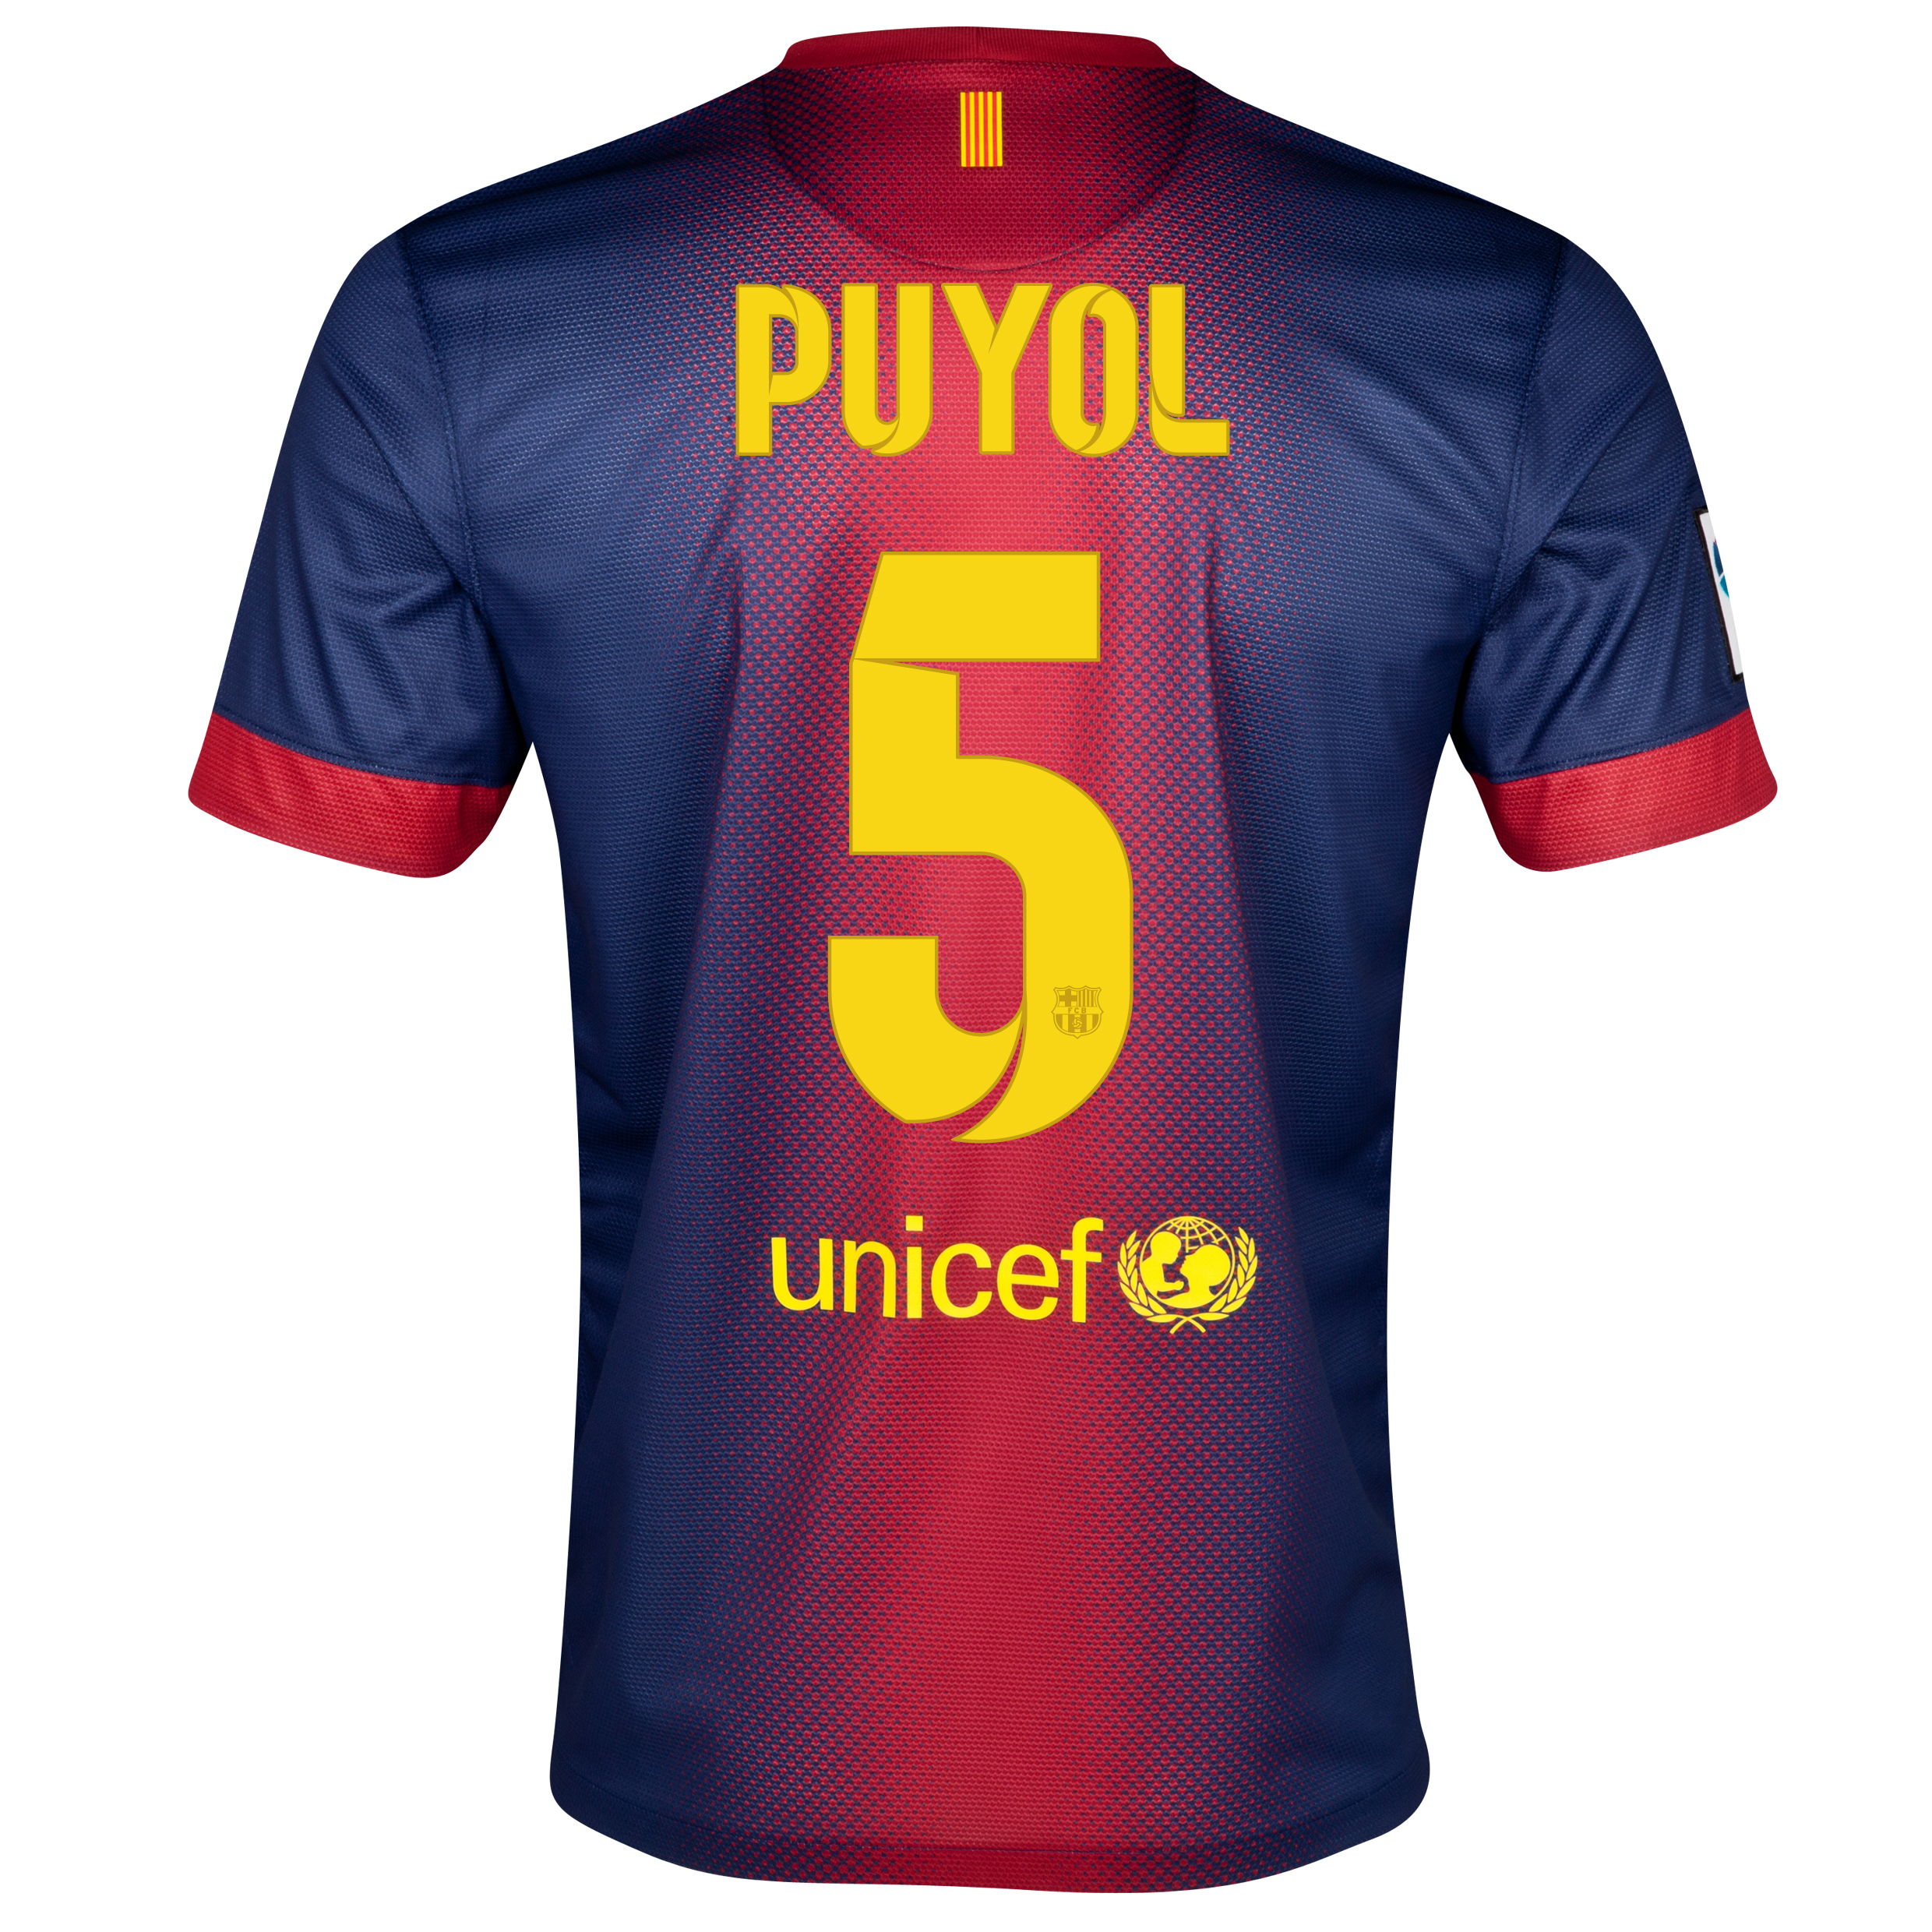 Barcelona Home Shirt 2012/13 with Puyol 5 printing